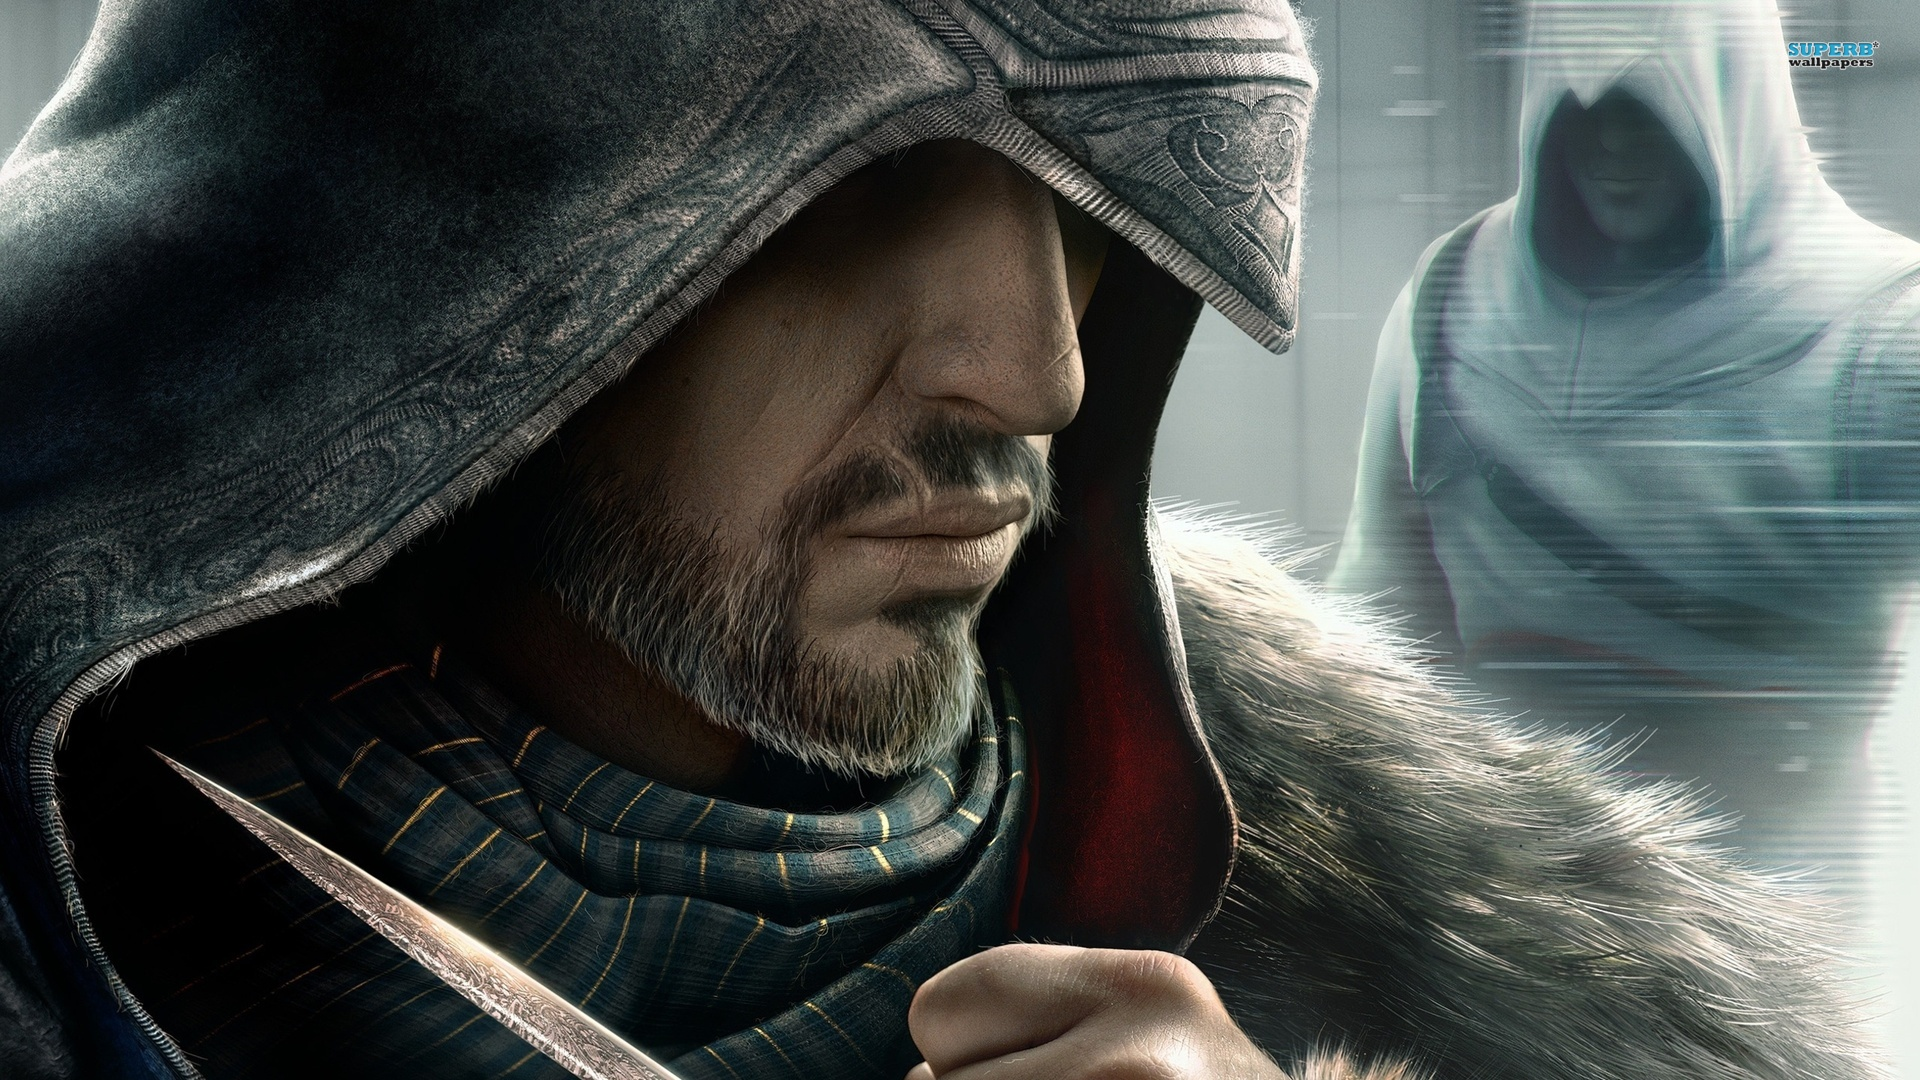 assassins creed revelations full hd wallpapers 1920x1080 1920x1080